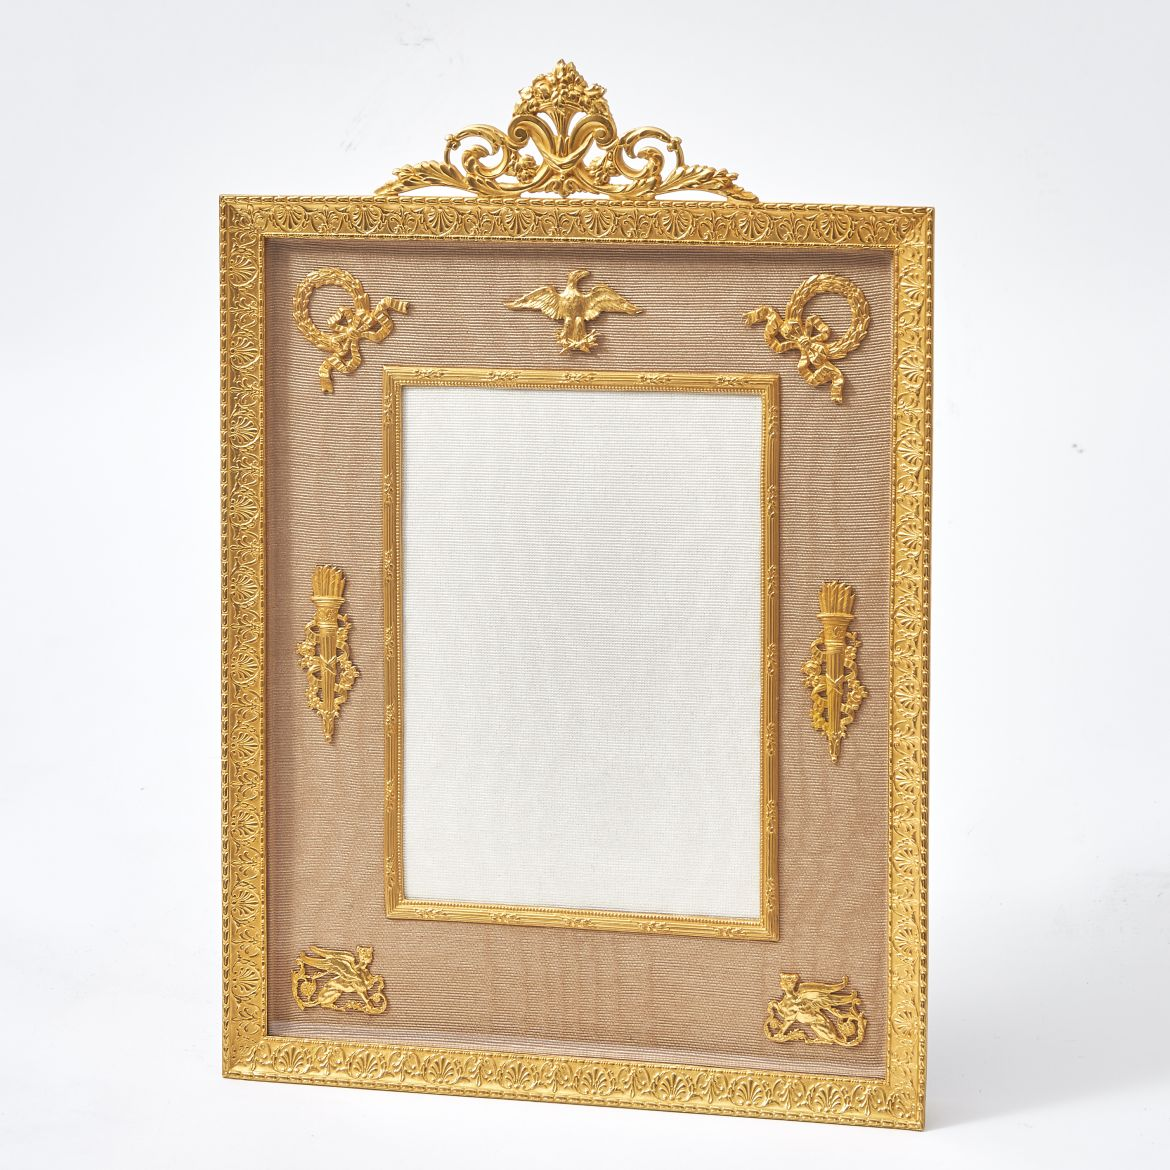 Ormolu Frame With Foliate Crest